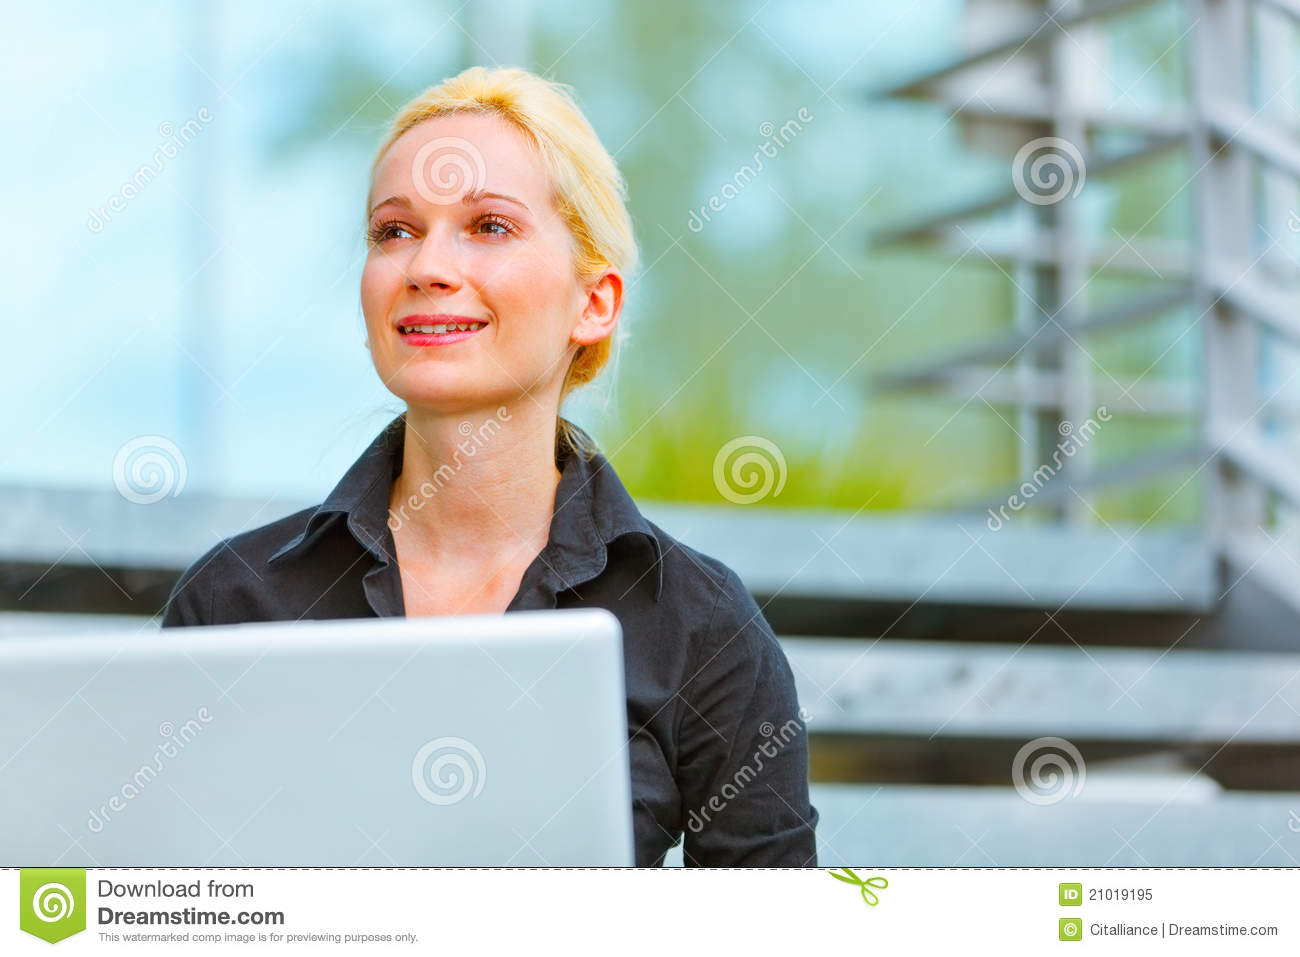 Smiling business woman sitting on stairs at office